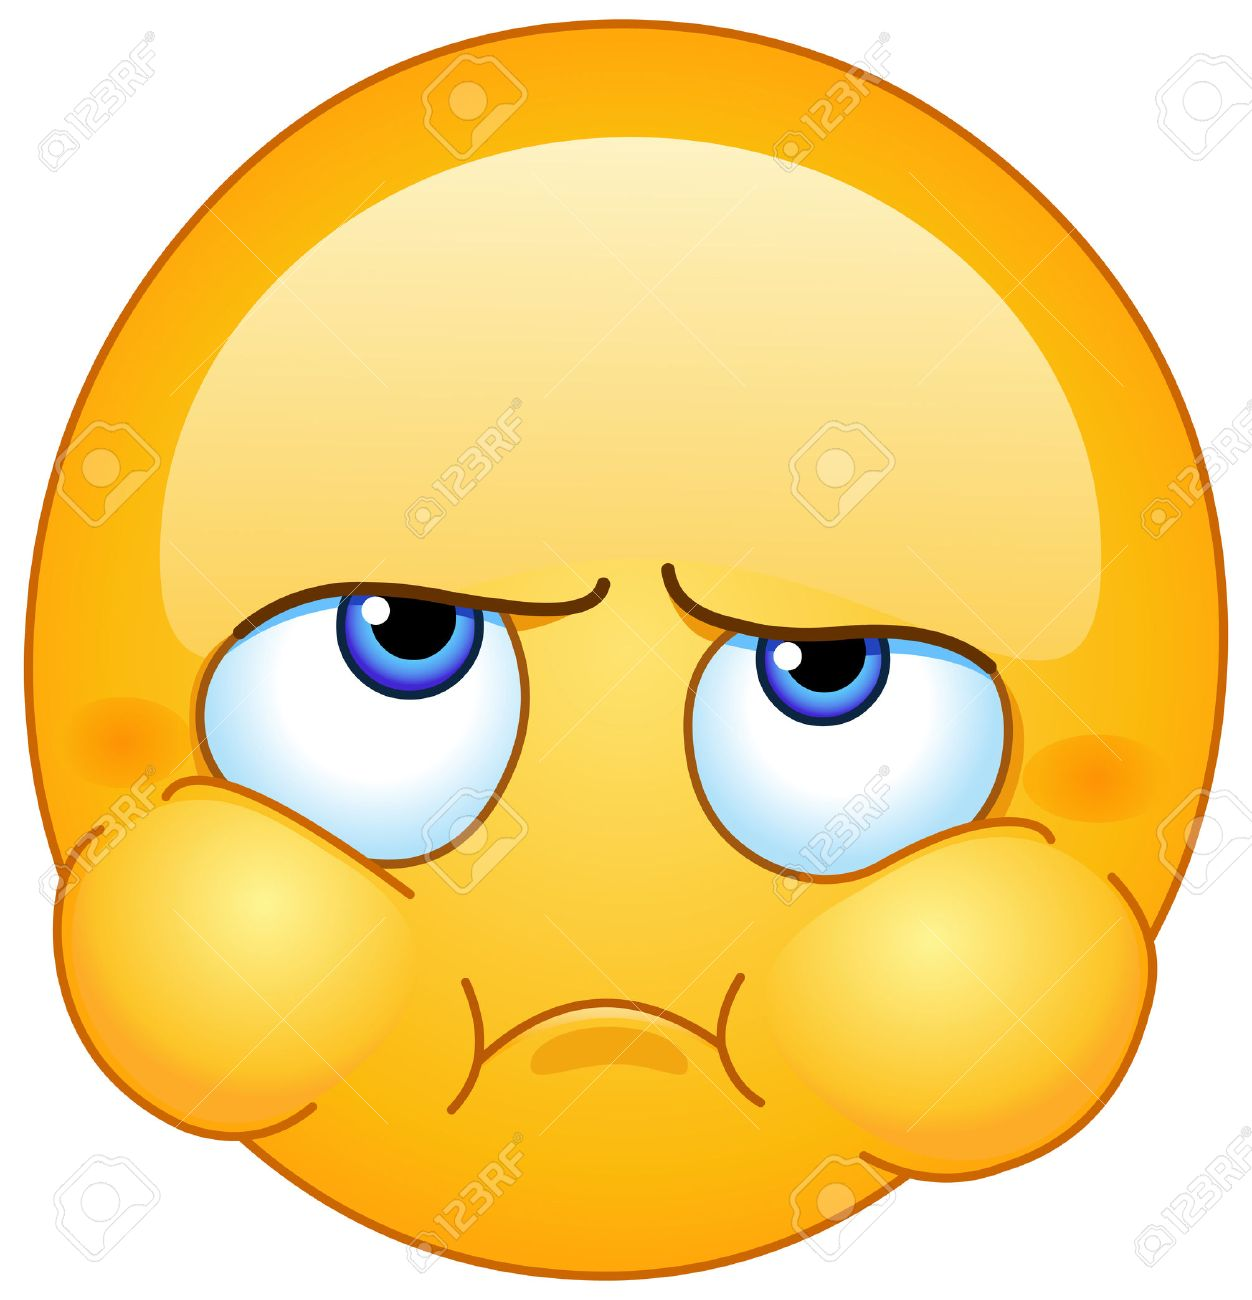 Irritated Face Clipart.